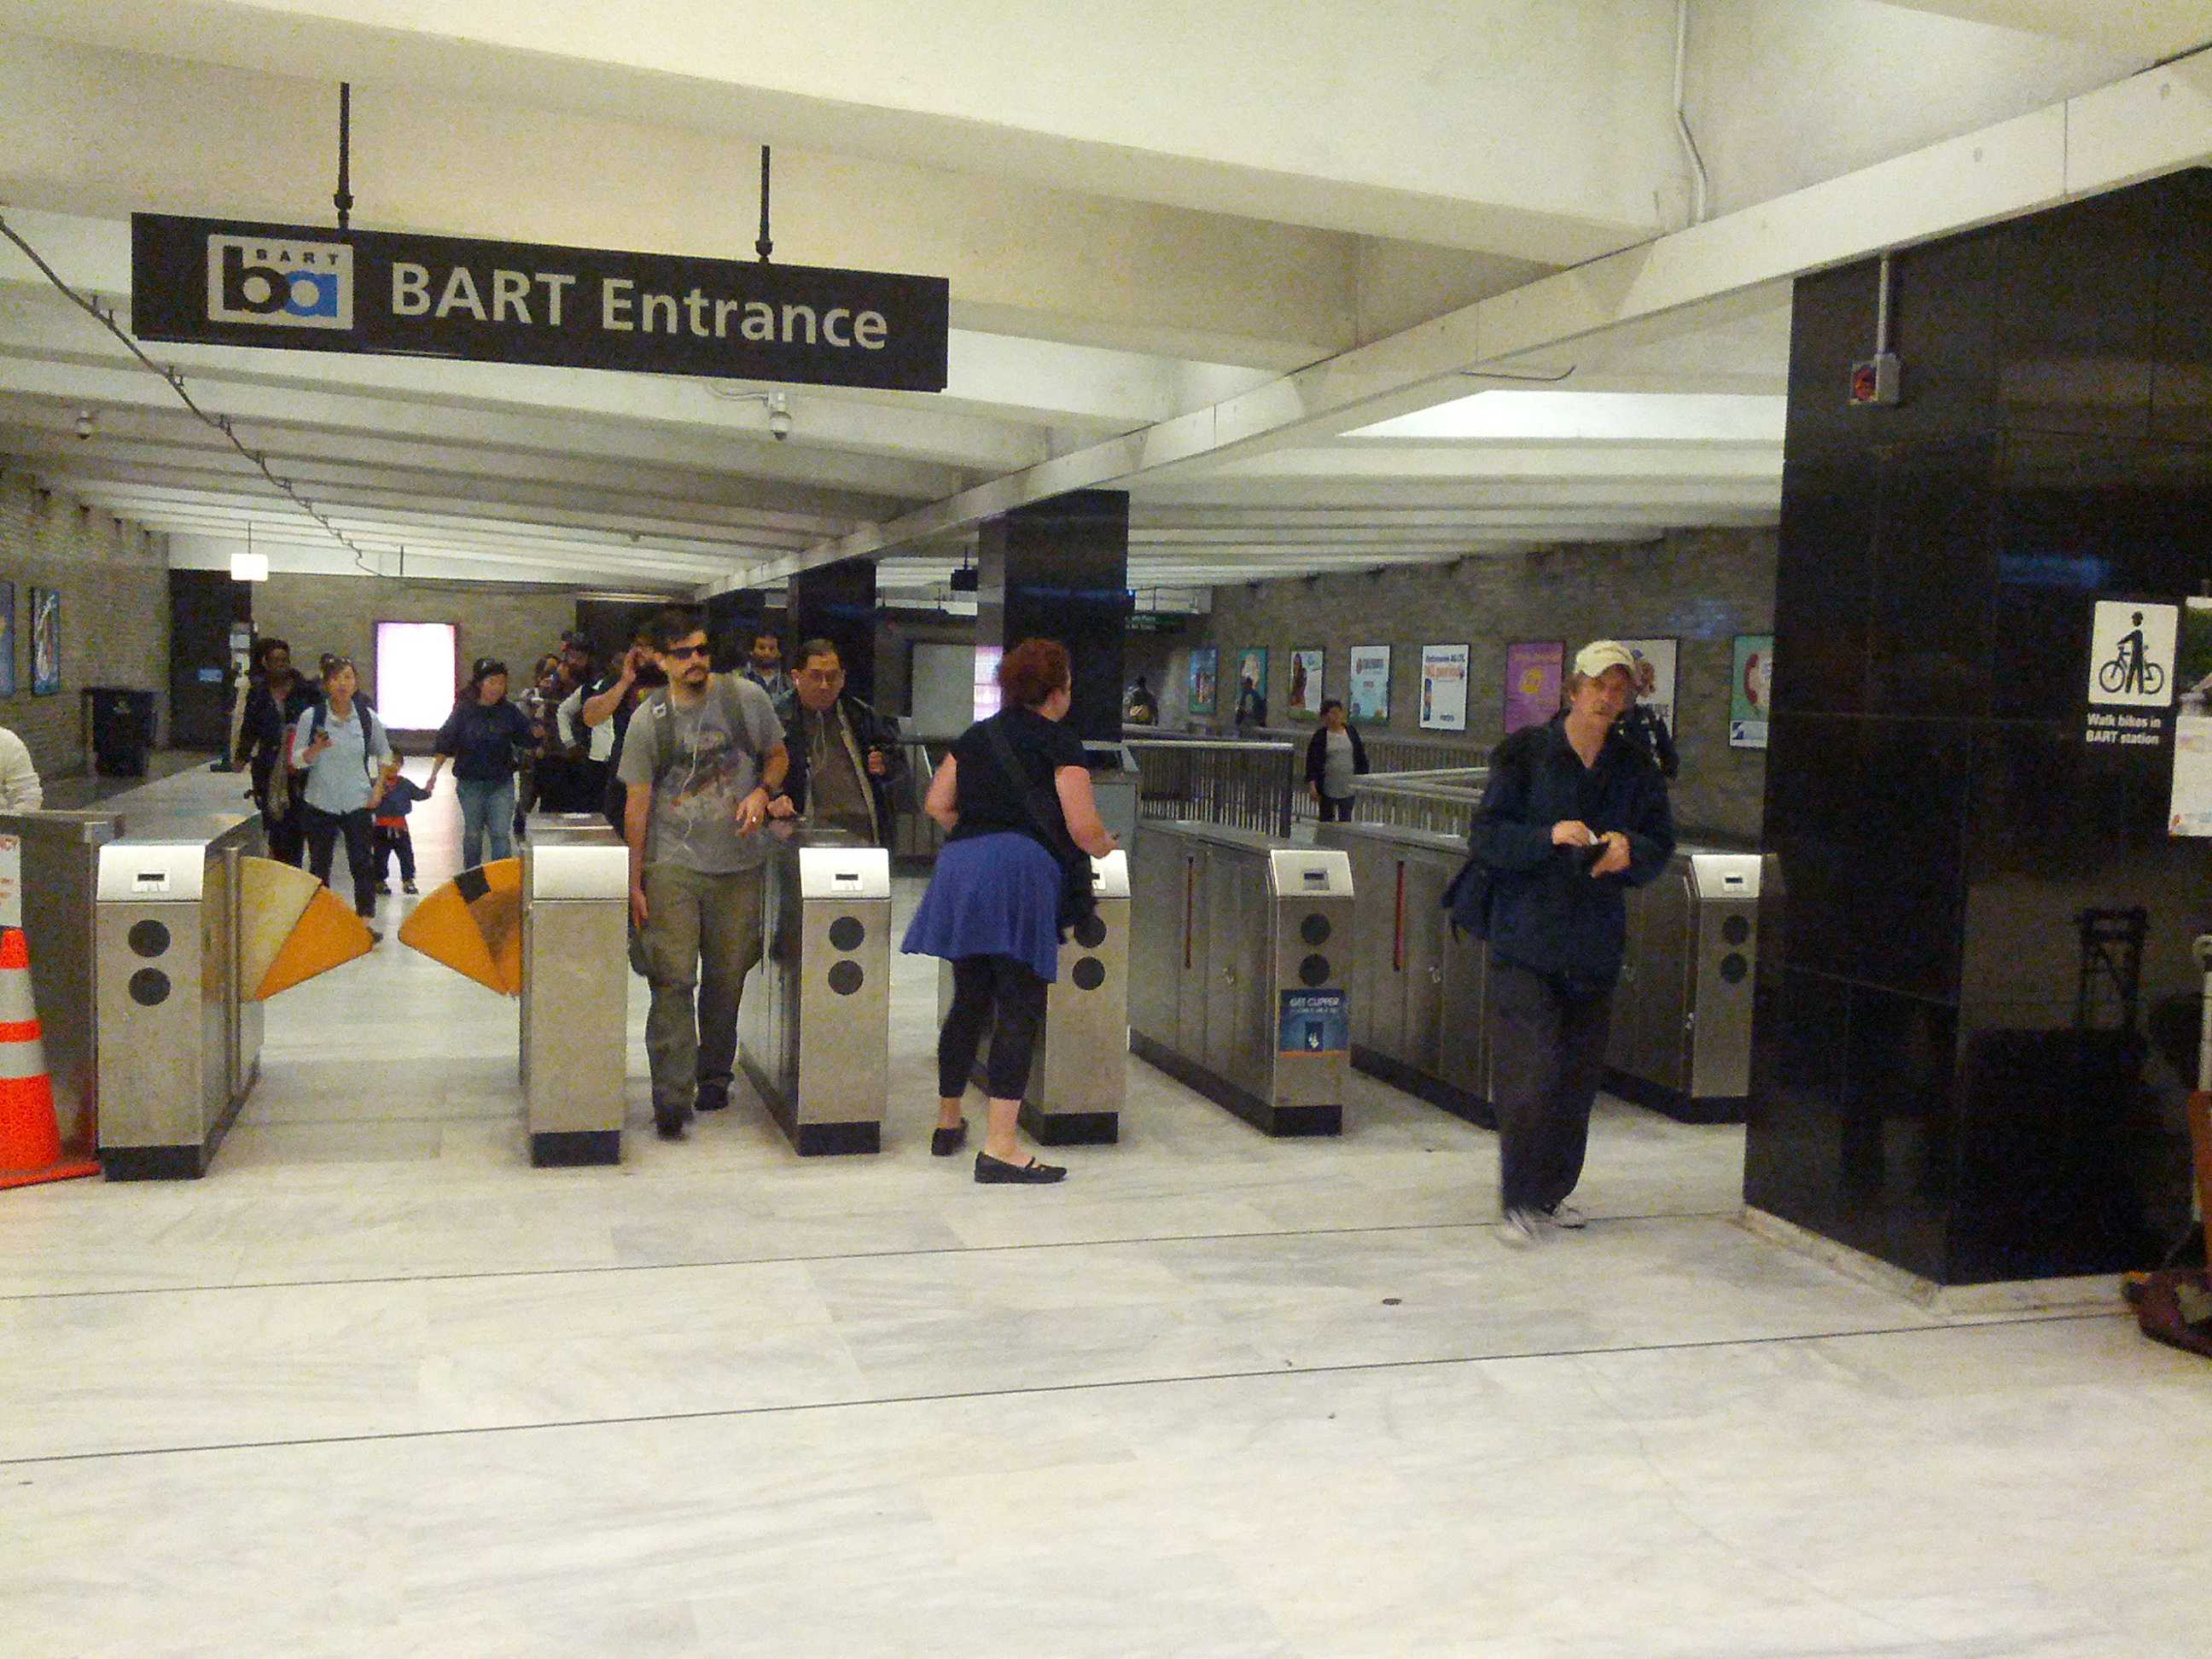 BART power outage stalls trains for hours